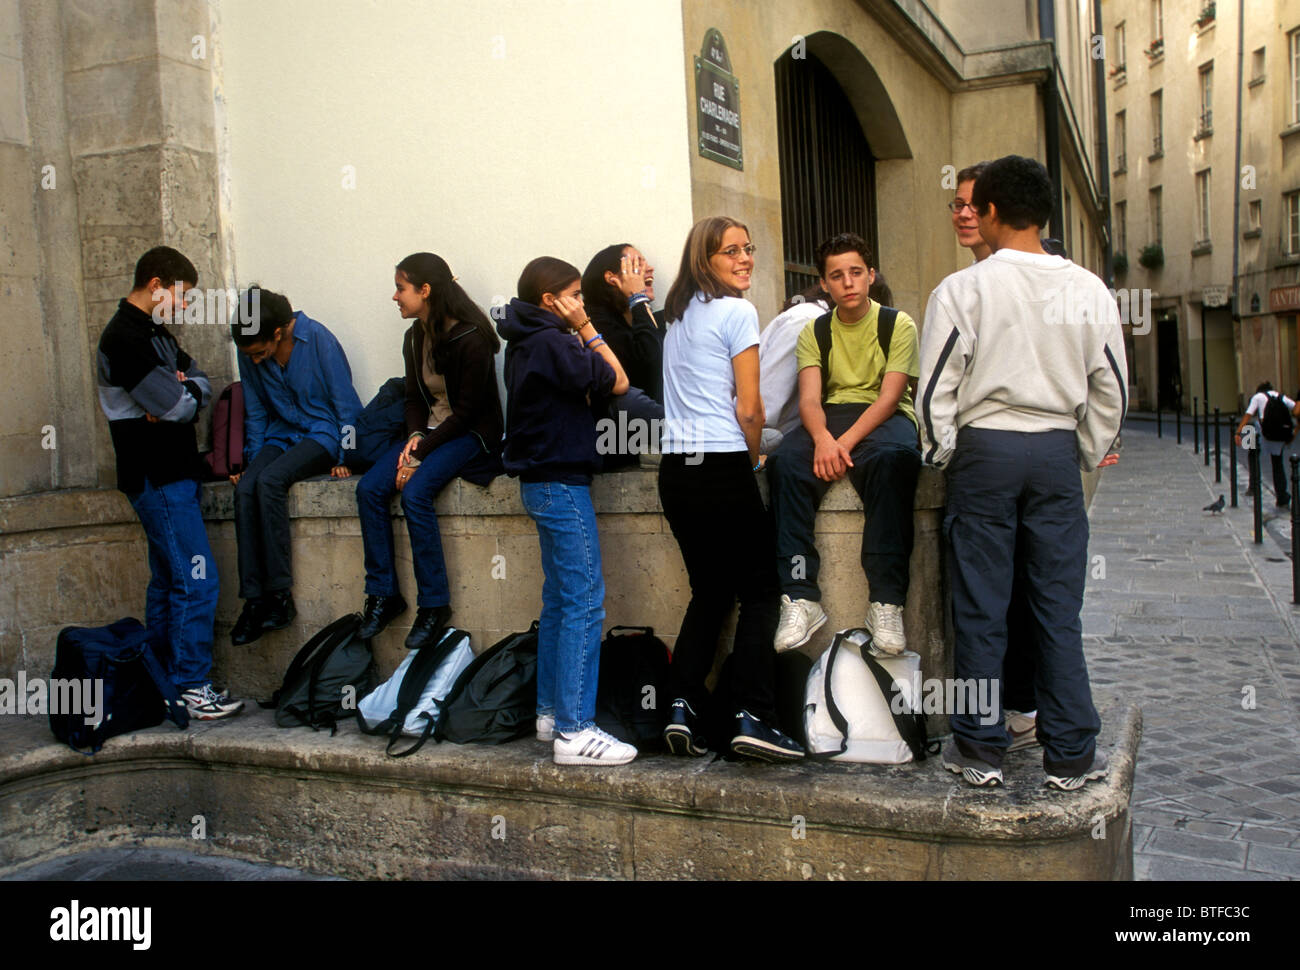 French high school students schoolboys and schoolgirls getting together at recess at Lycee Charlemagne in the Marais - Stock Image